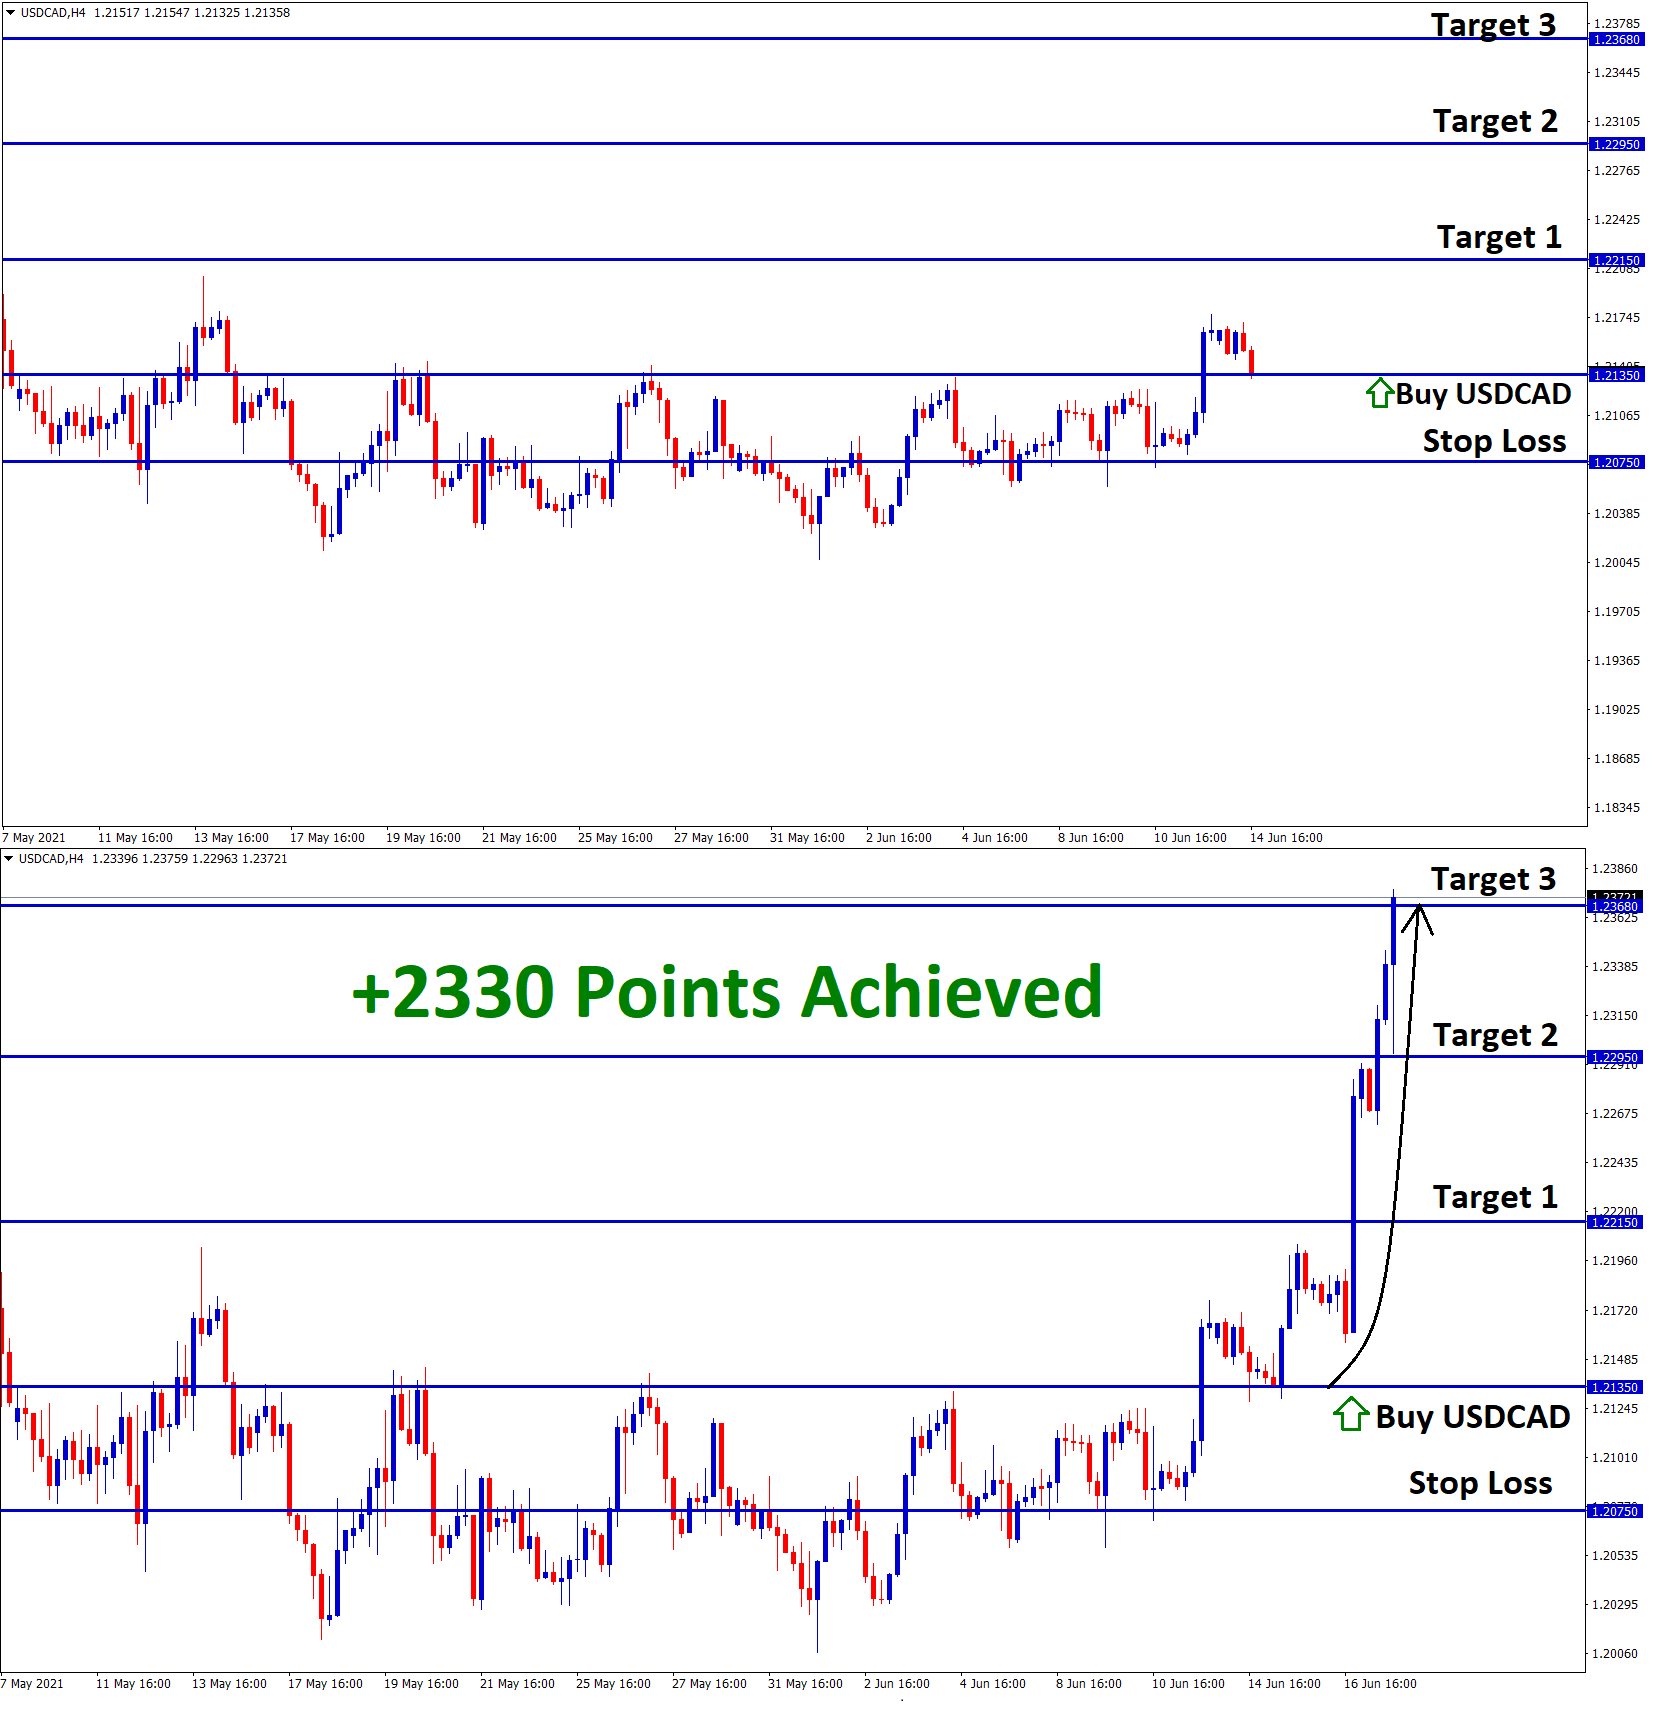 2330 Points achieved in USDCAD